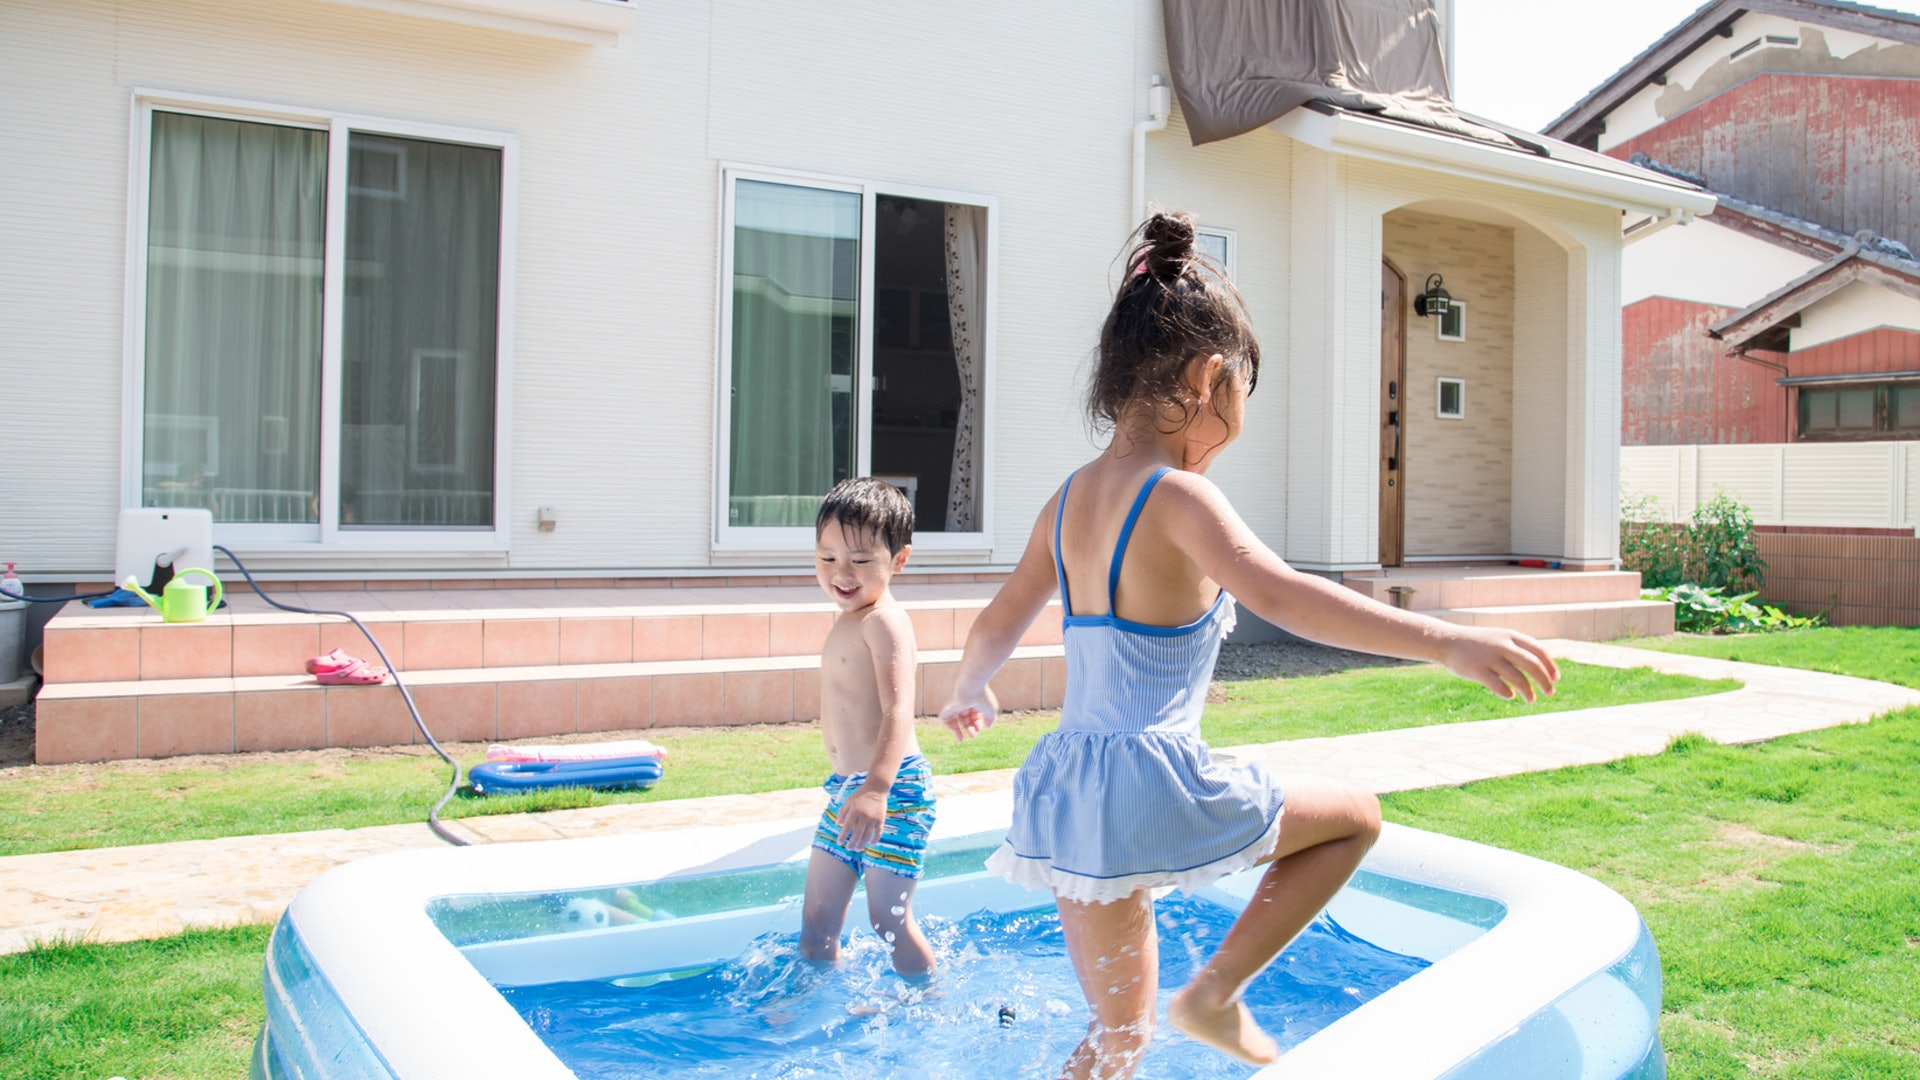 7 Gross Facts About Kiddie Pools, Because There's So Much More Than Just Water